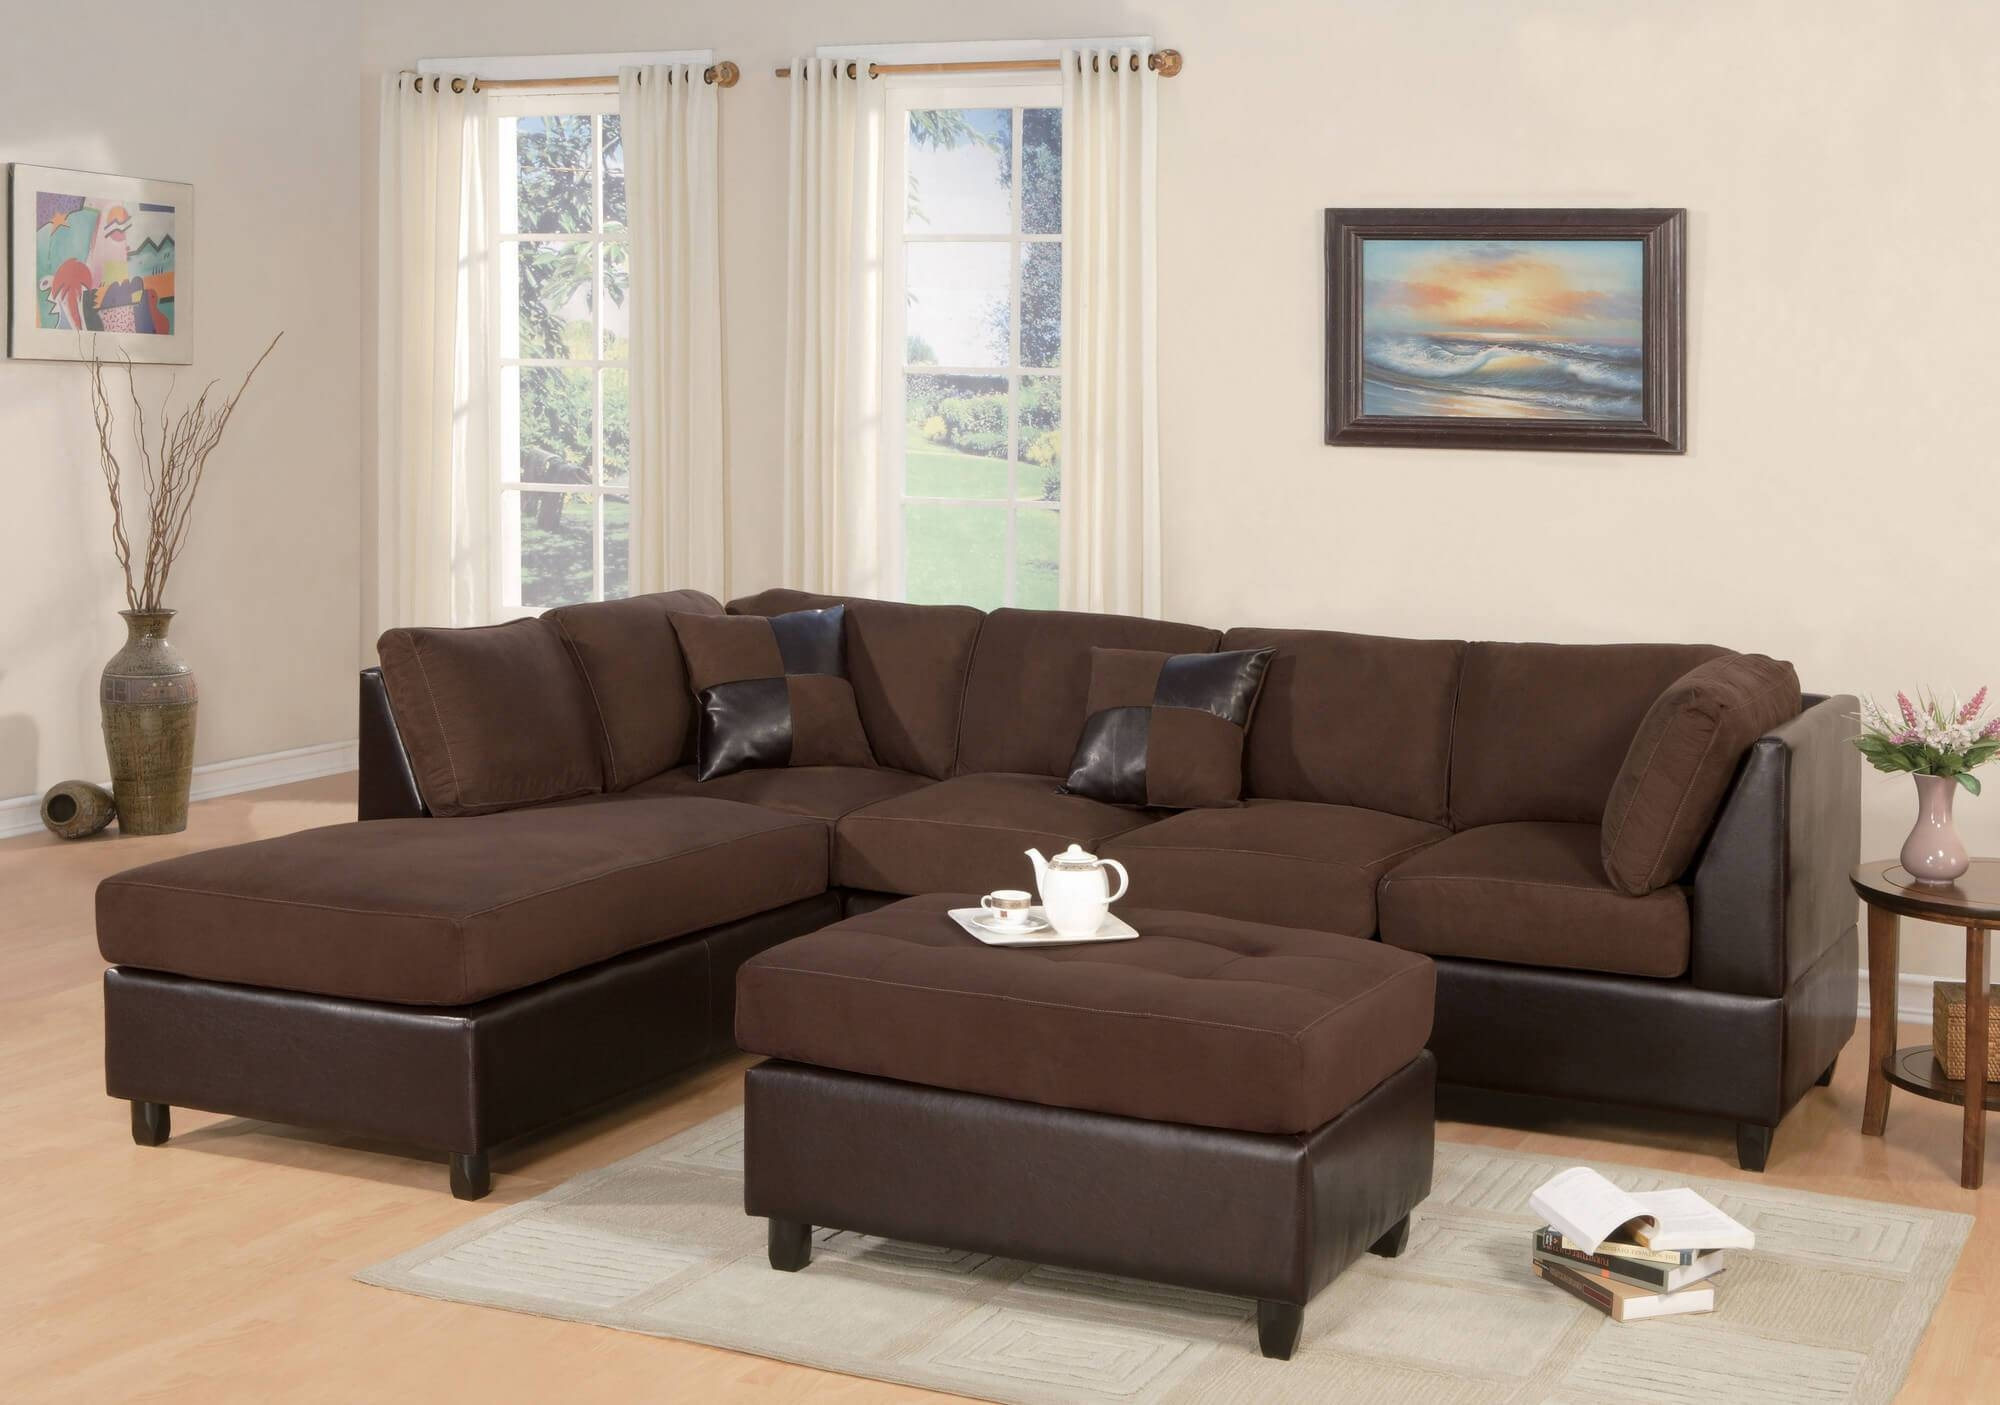 30 Collection of Big Lots Sofas